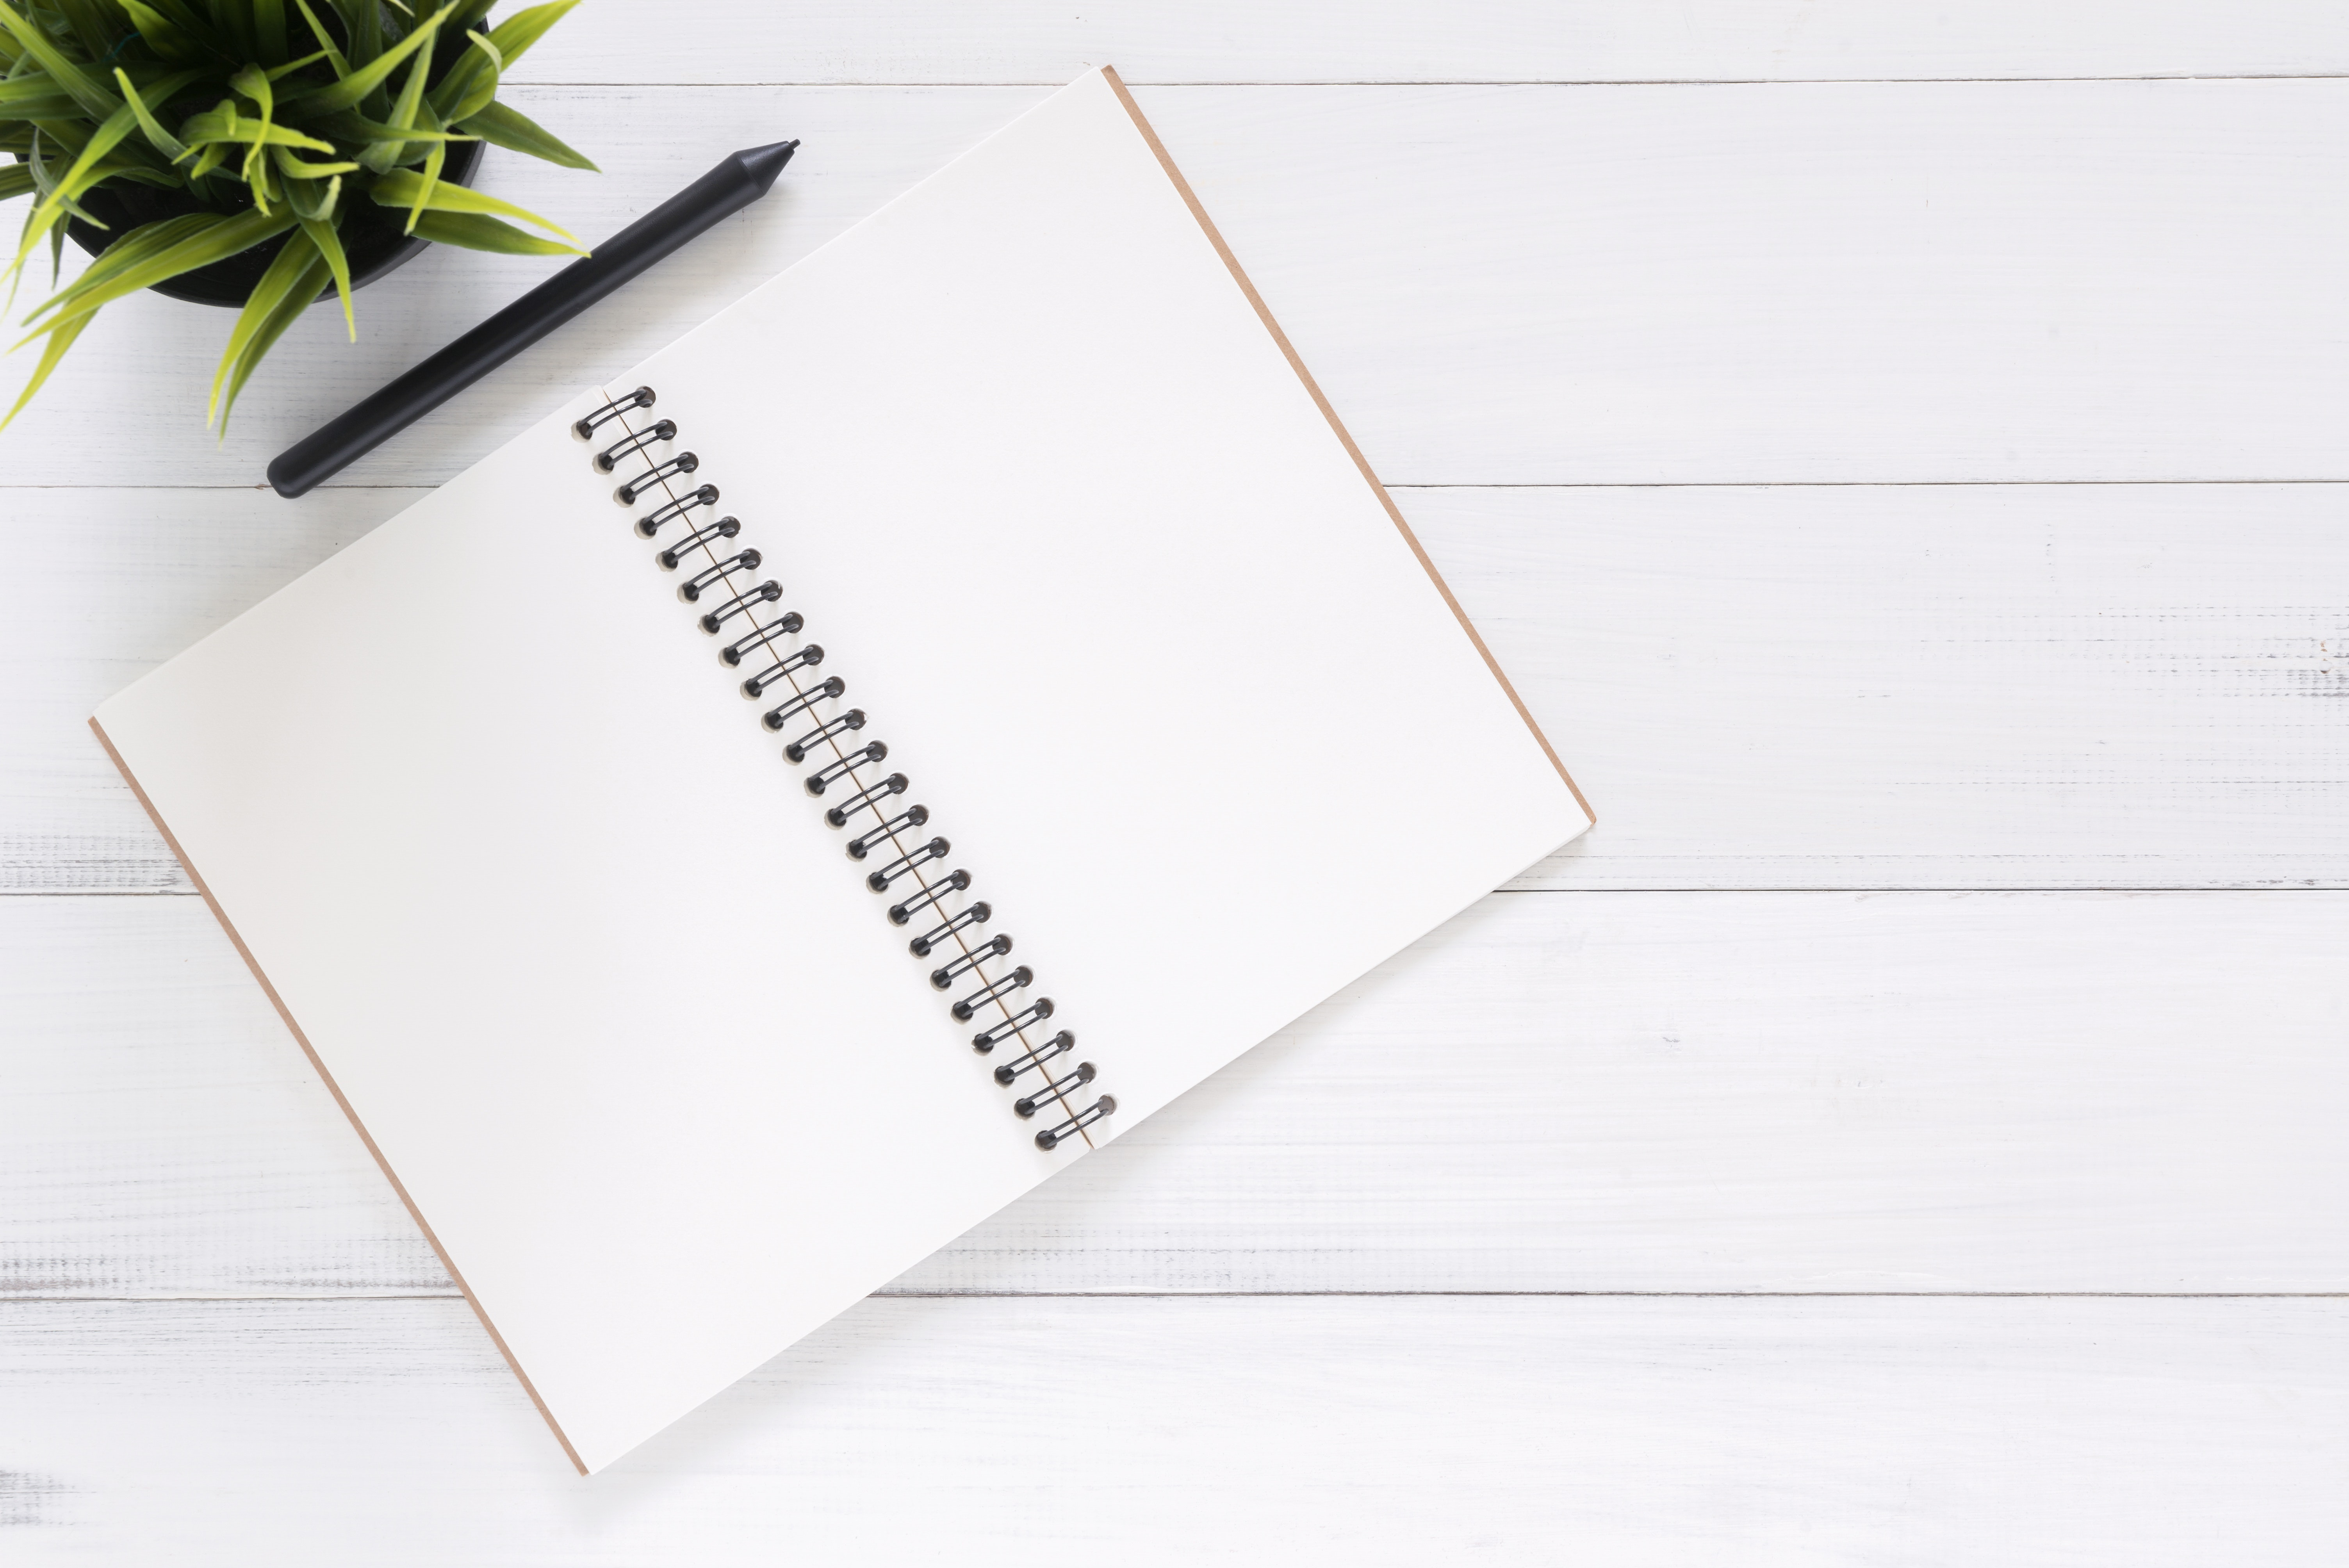 Open black notebook with pen on top ready to plan